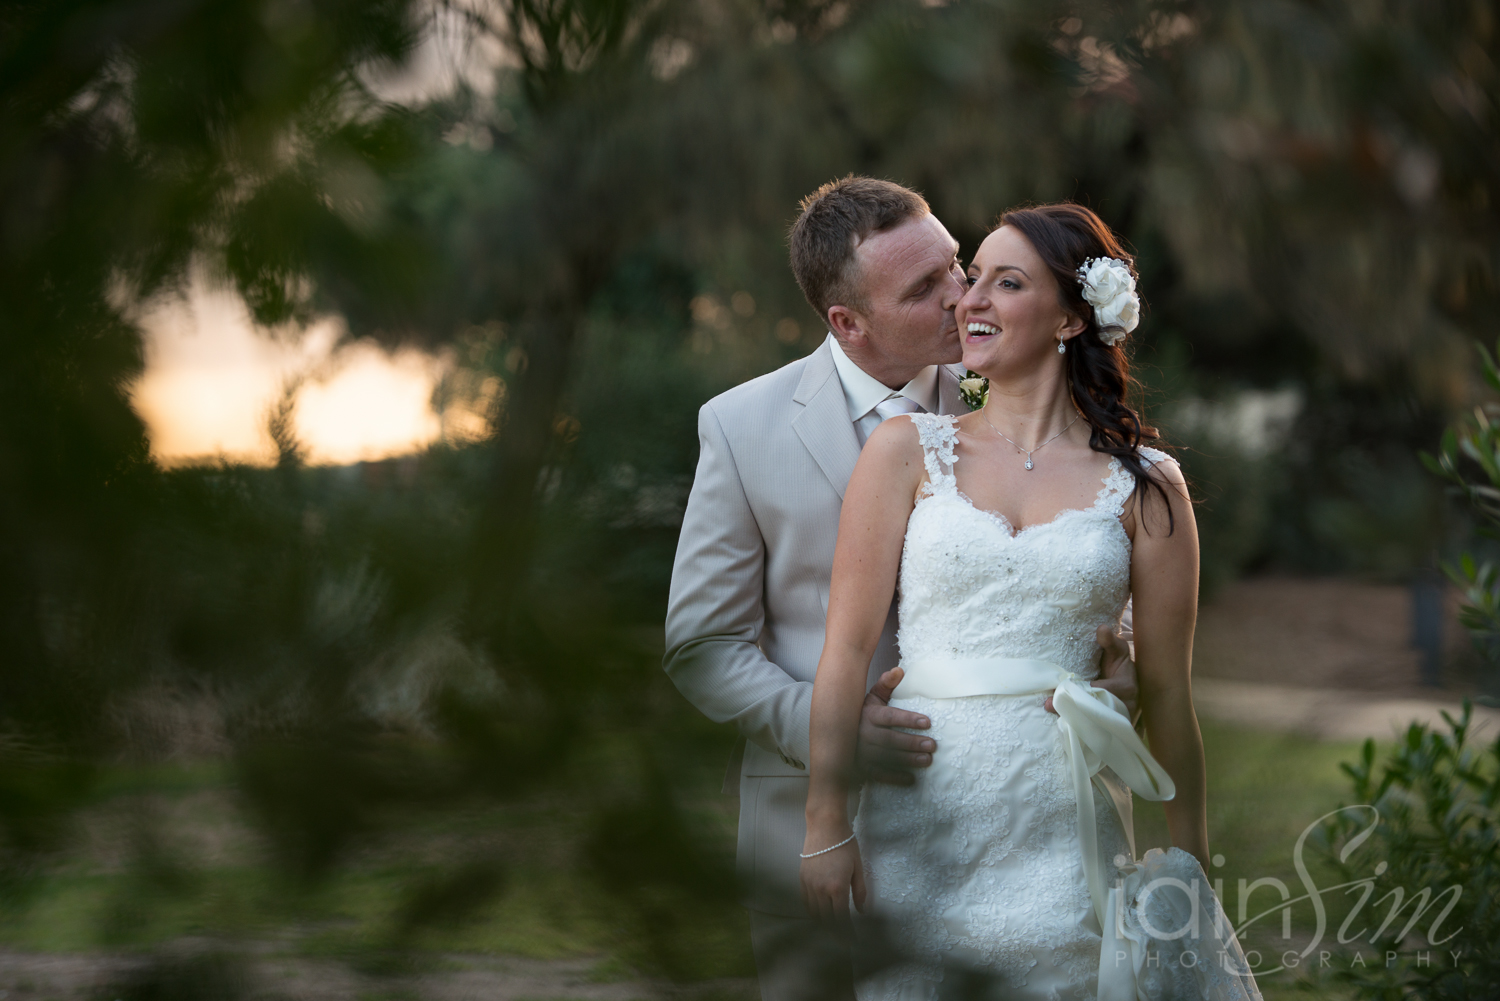 Rachael and Mark's Mordialloc Wedding